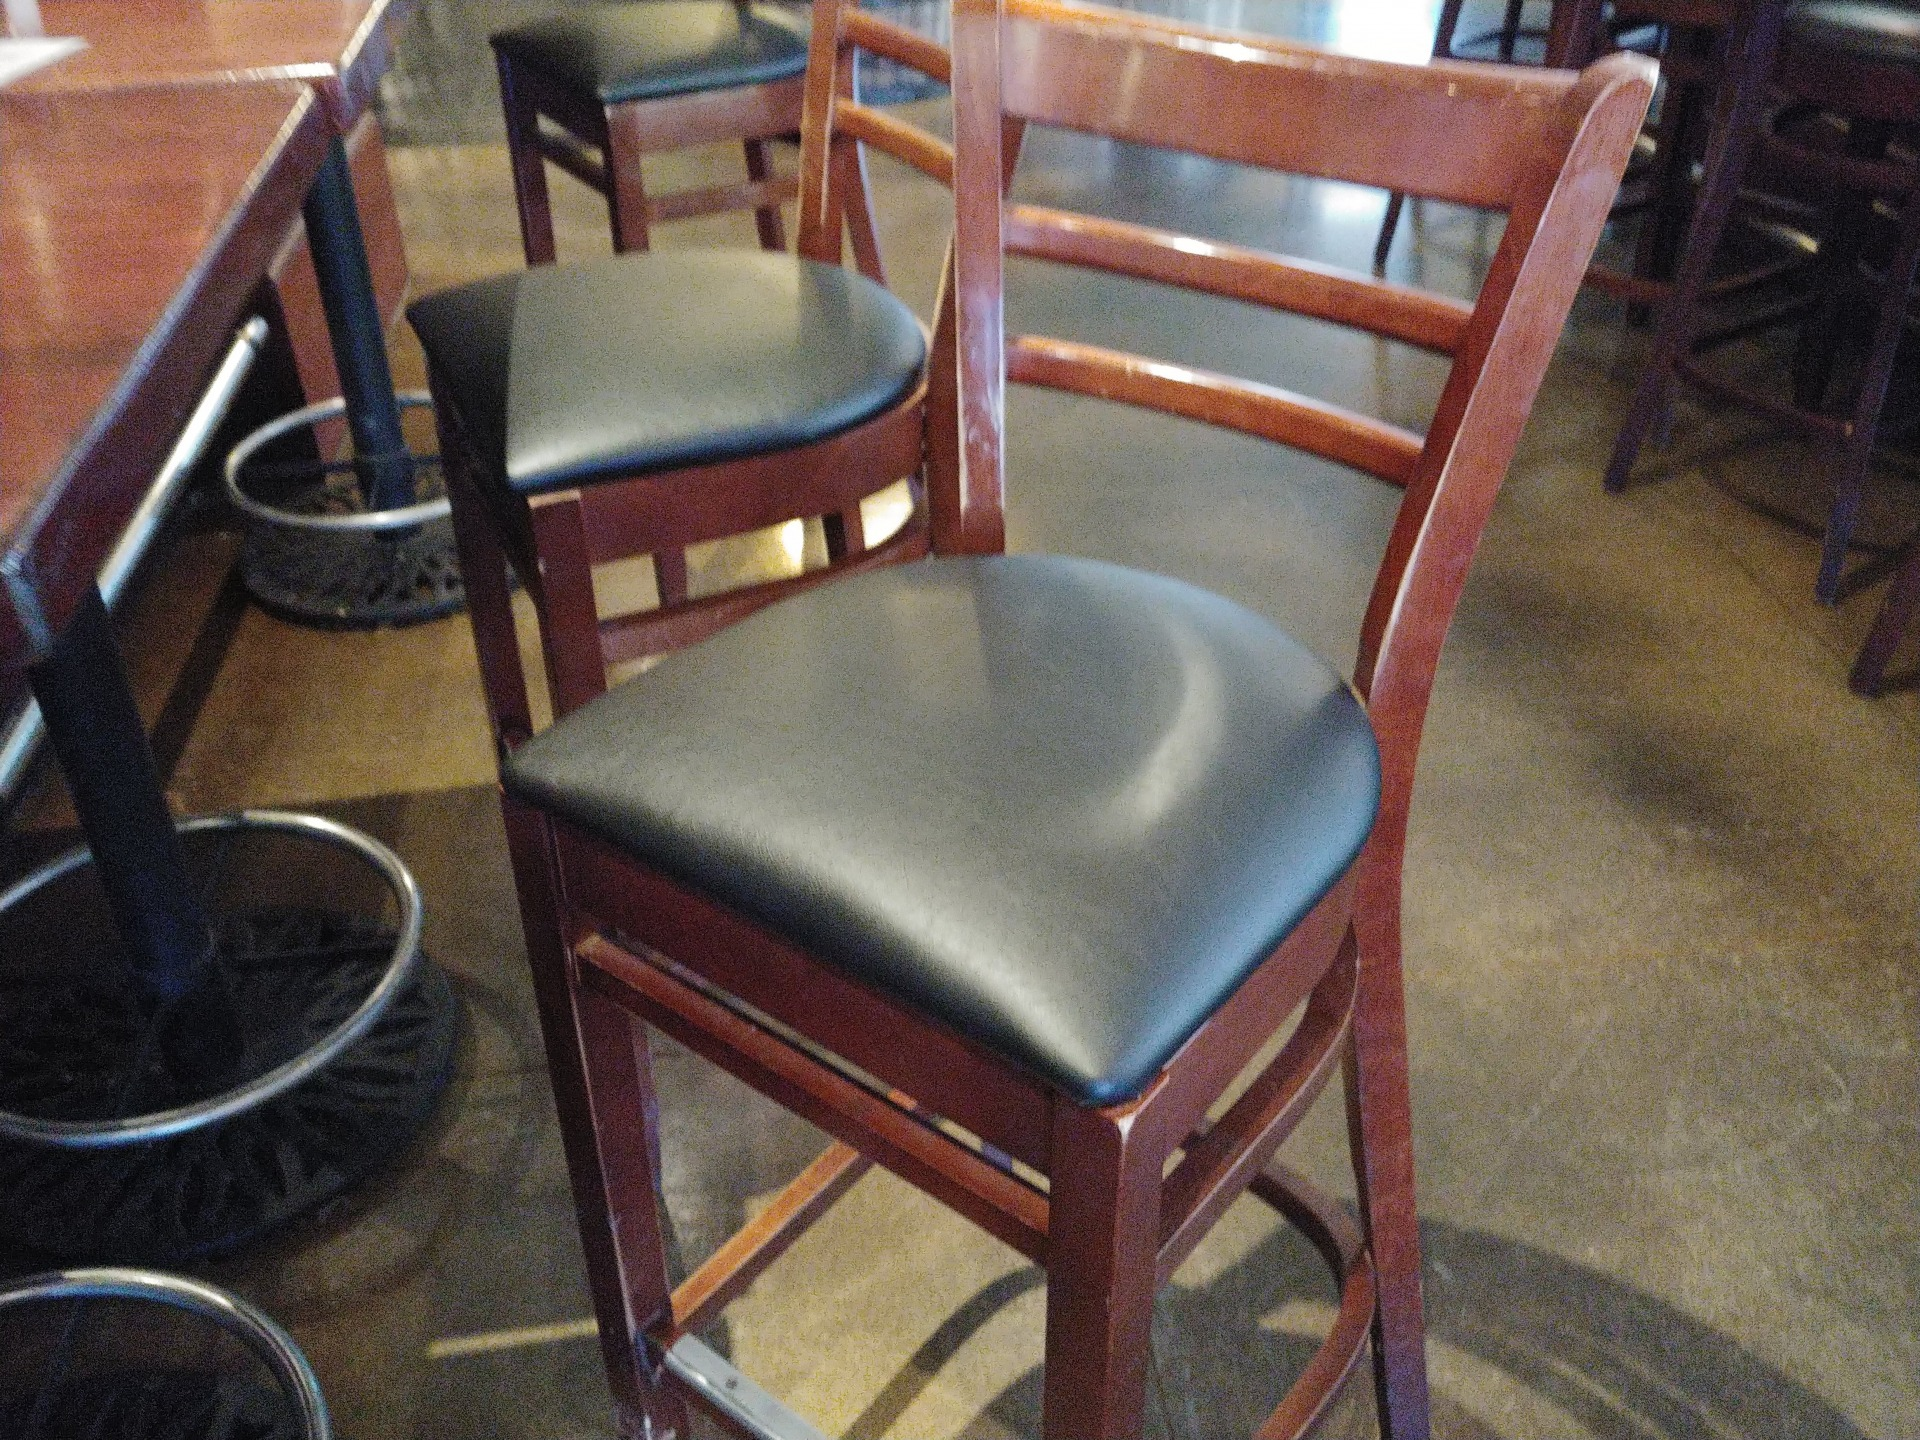 Bar-Stool Chair Seat Recover.Upholstery Repair Service.Gordon Biersch Brewing Company